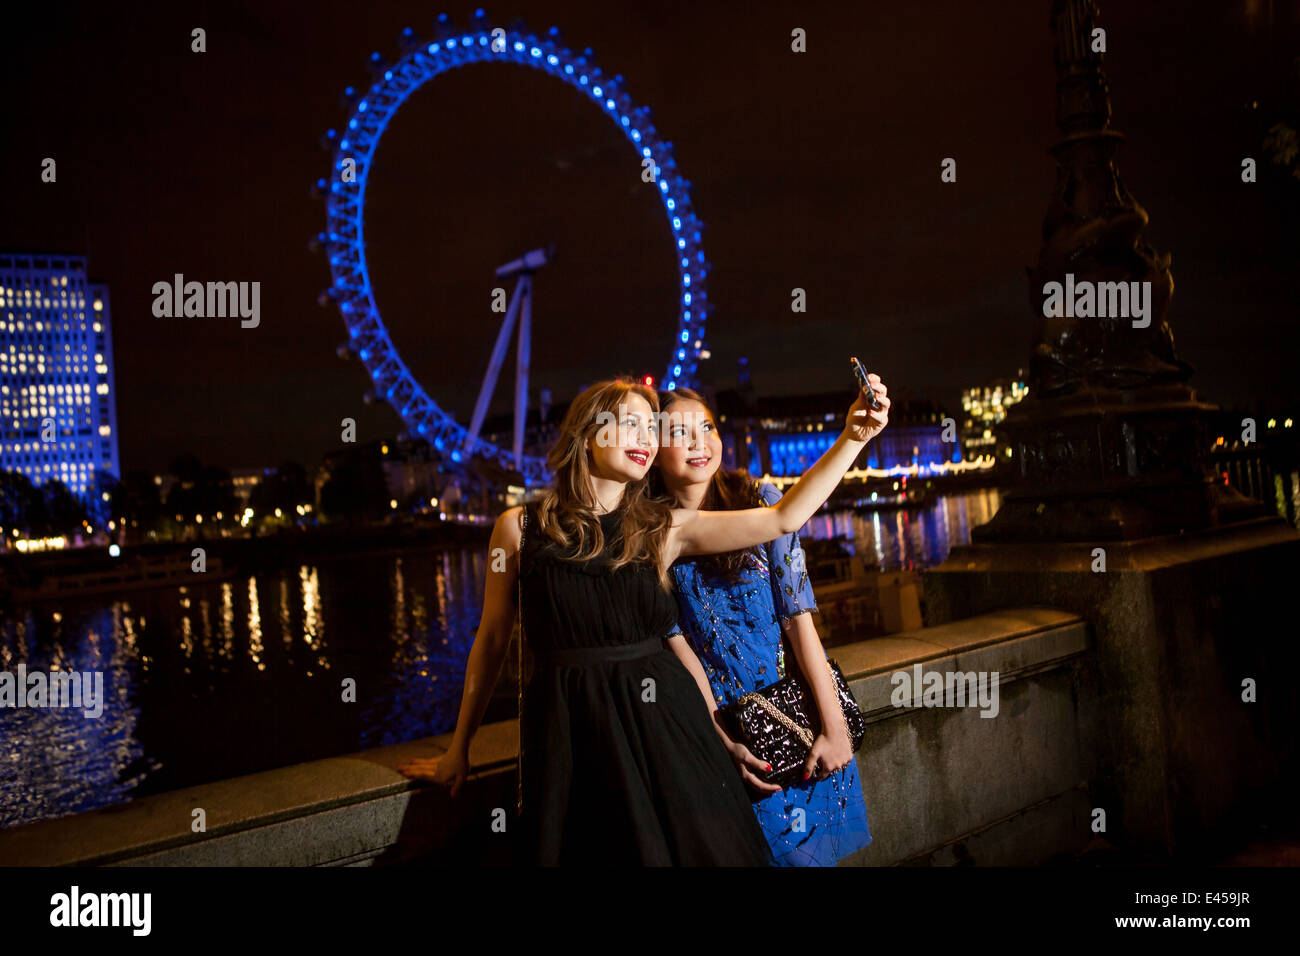 Two young female friends taking self portrait at night, London, UK - Stock Image